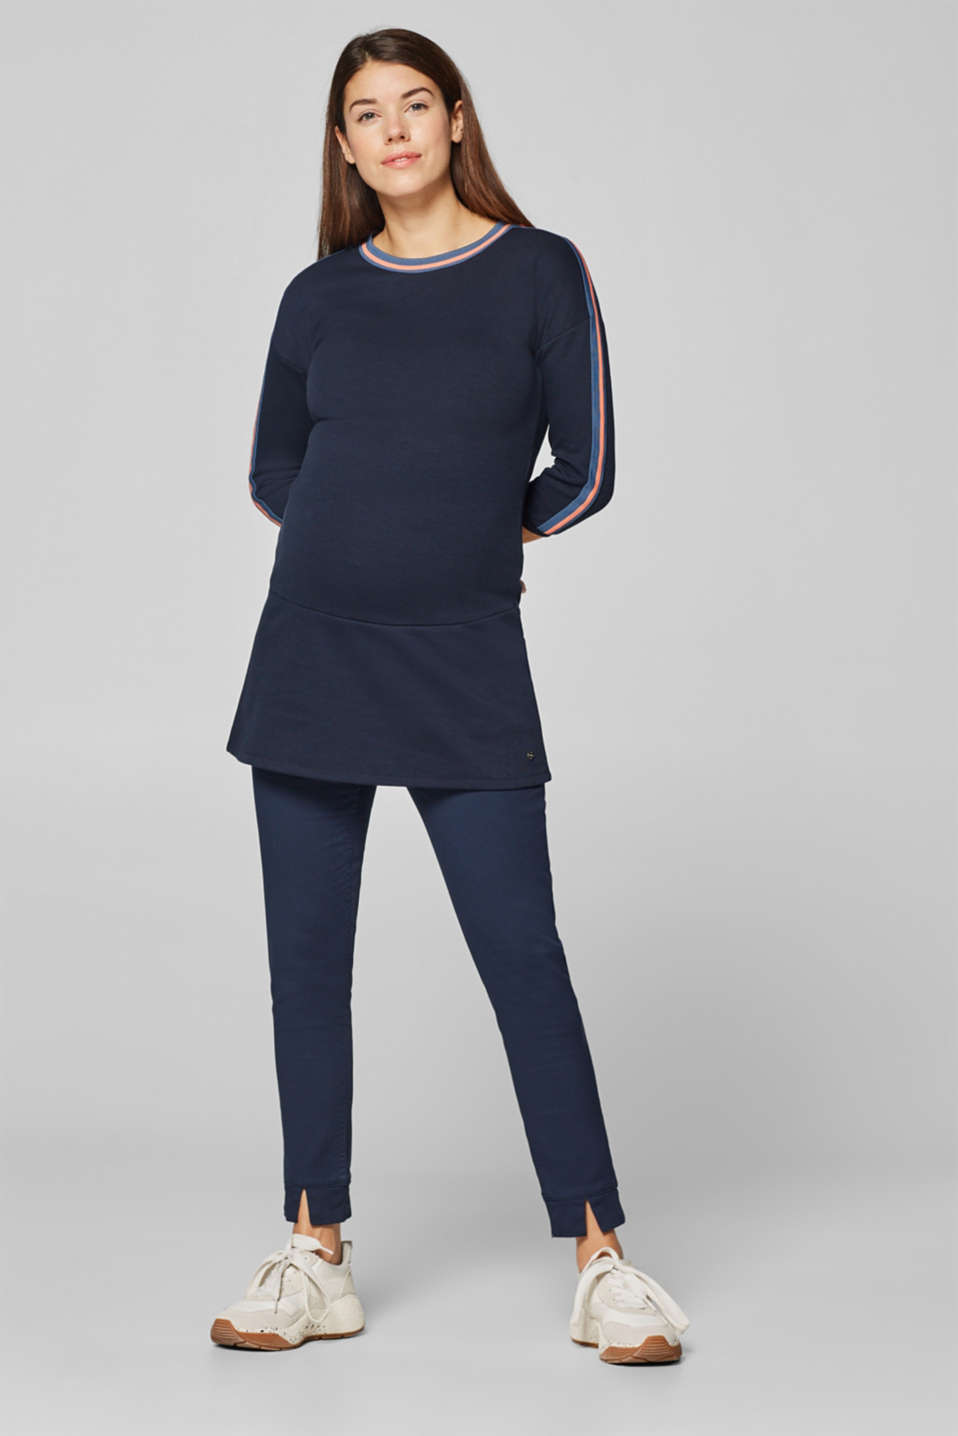 Sweatshirt tunic with striped woven tape decoration, LCNIGHT BLUE, detail image number 1